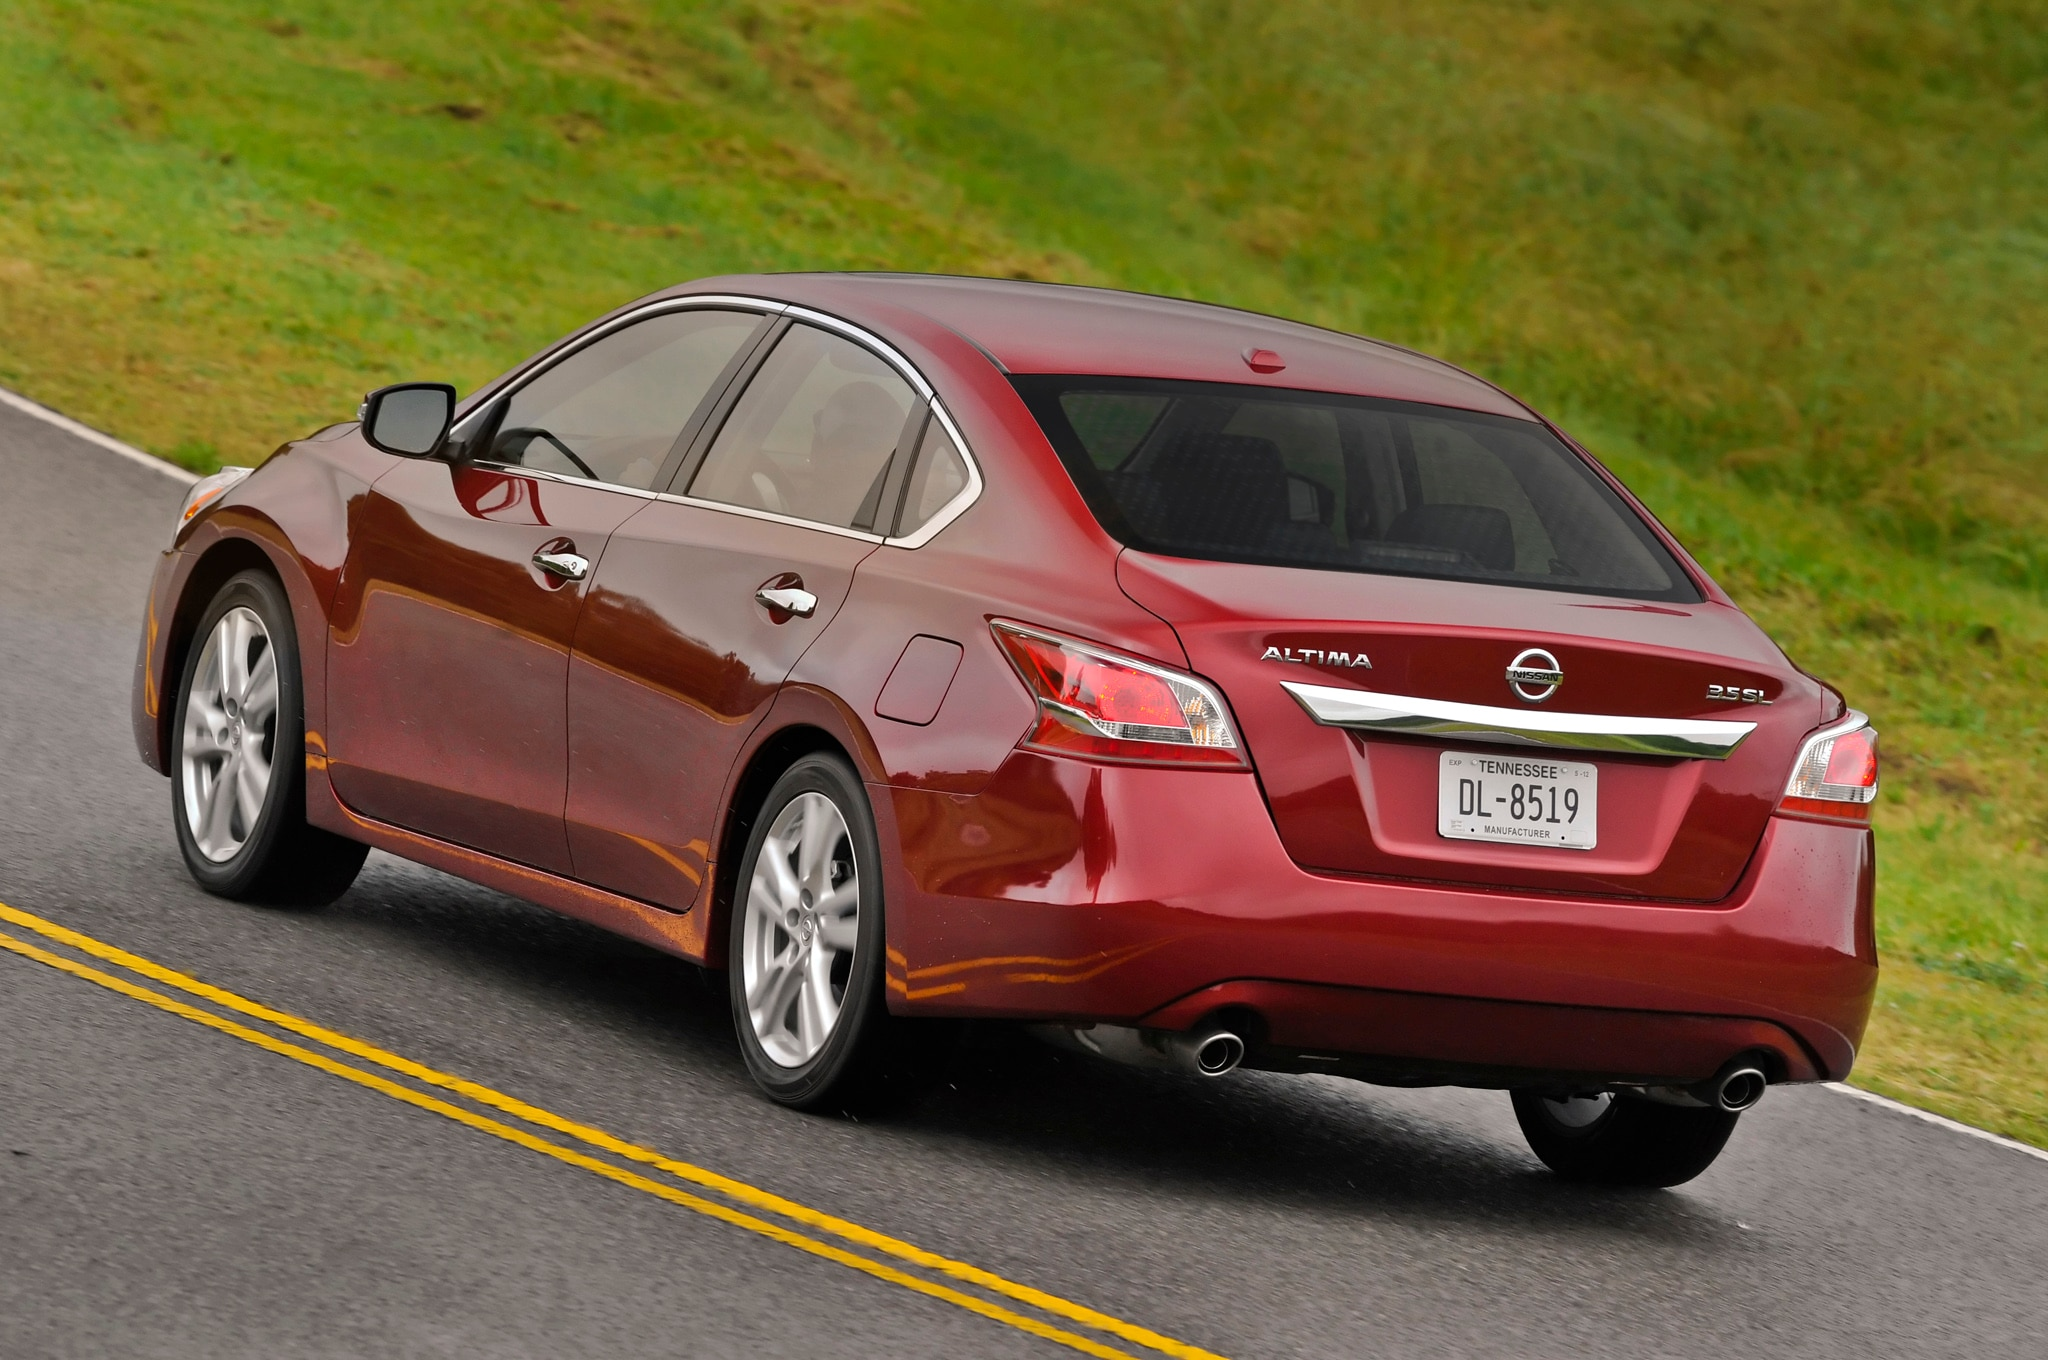 2014 nissan altima priced at $22,650